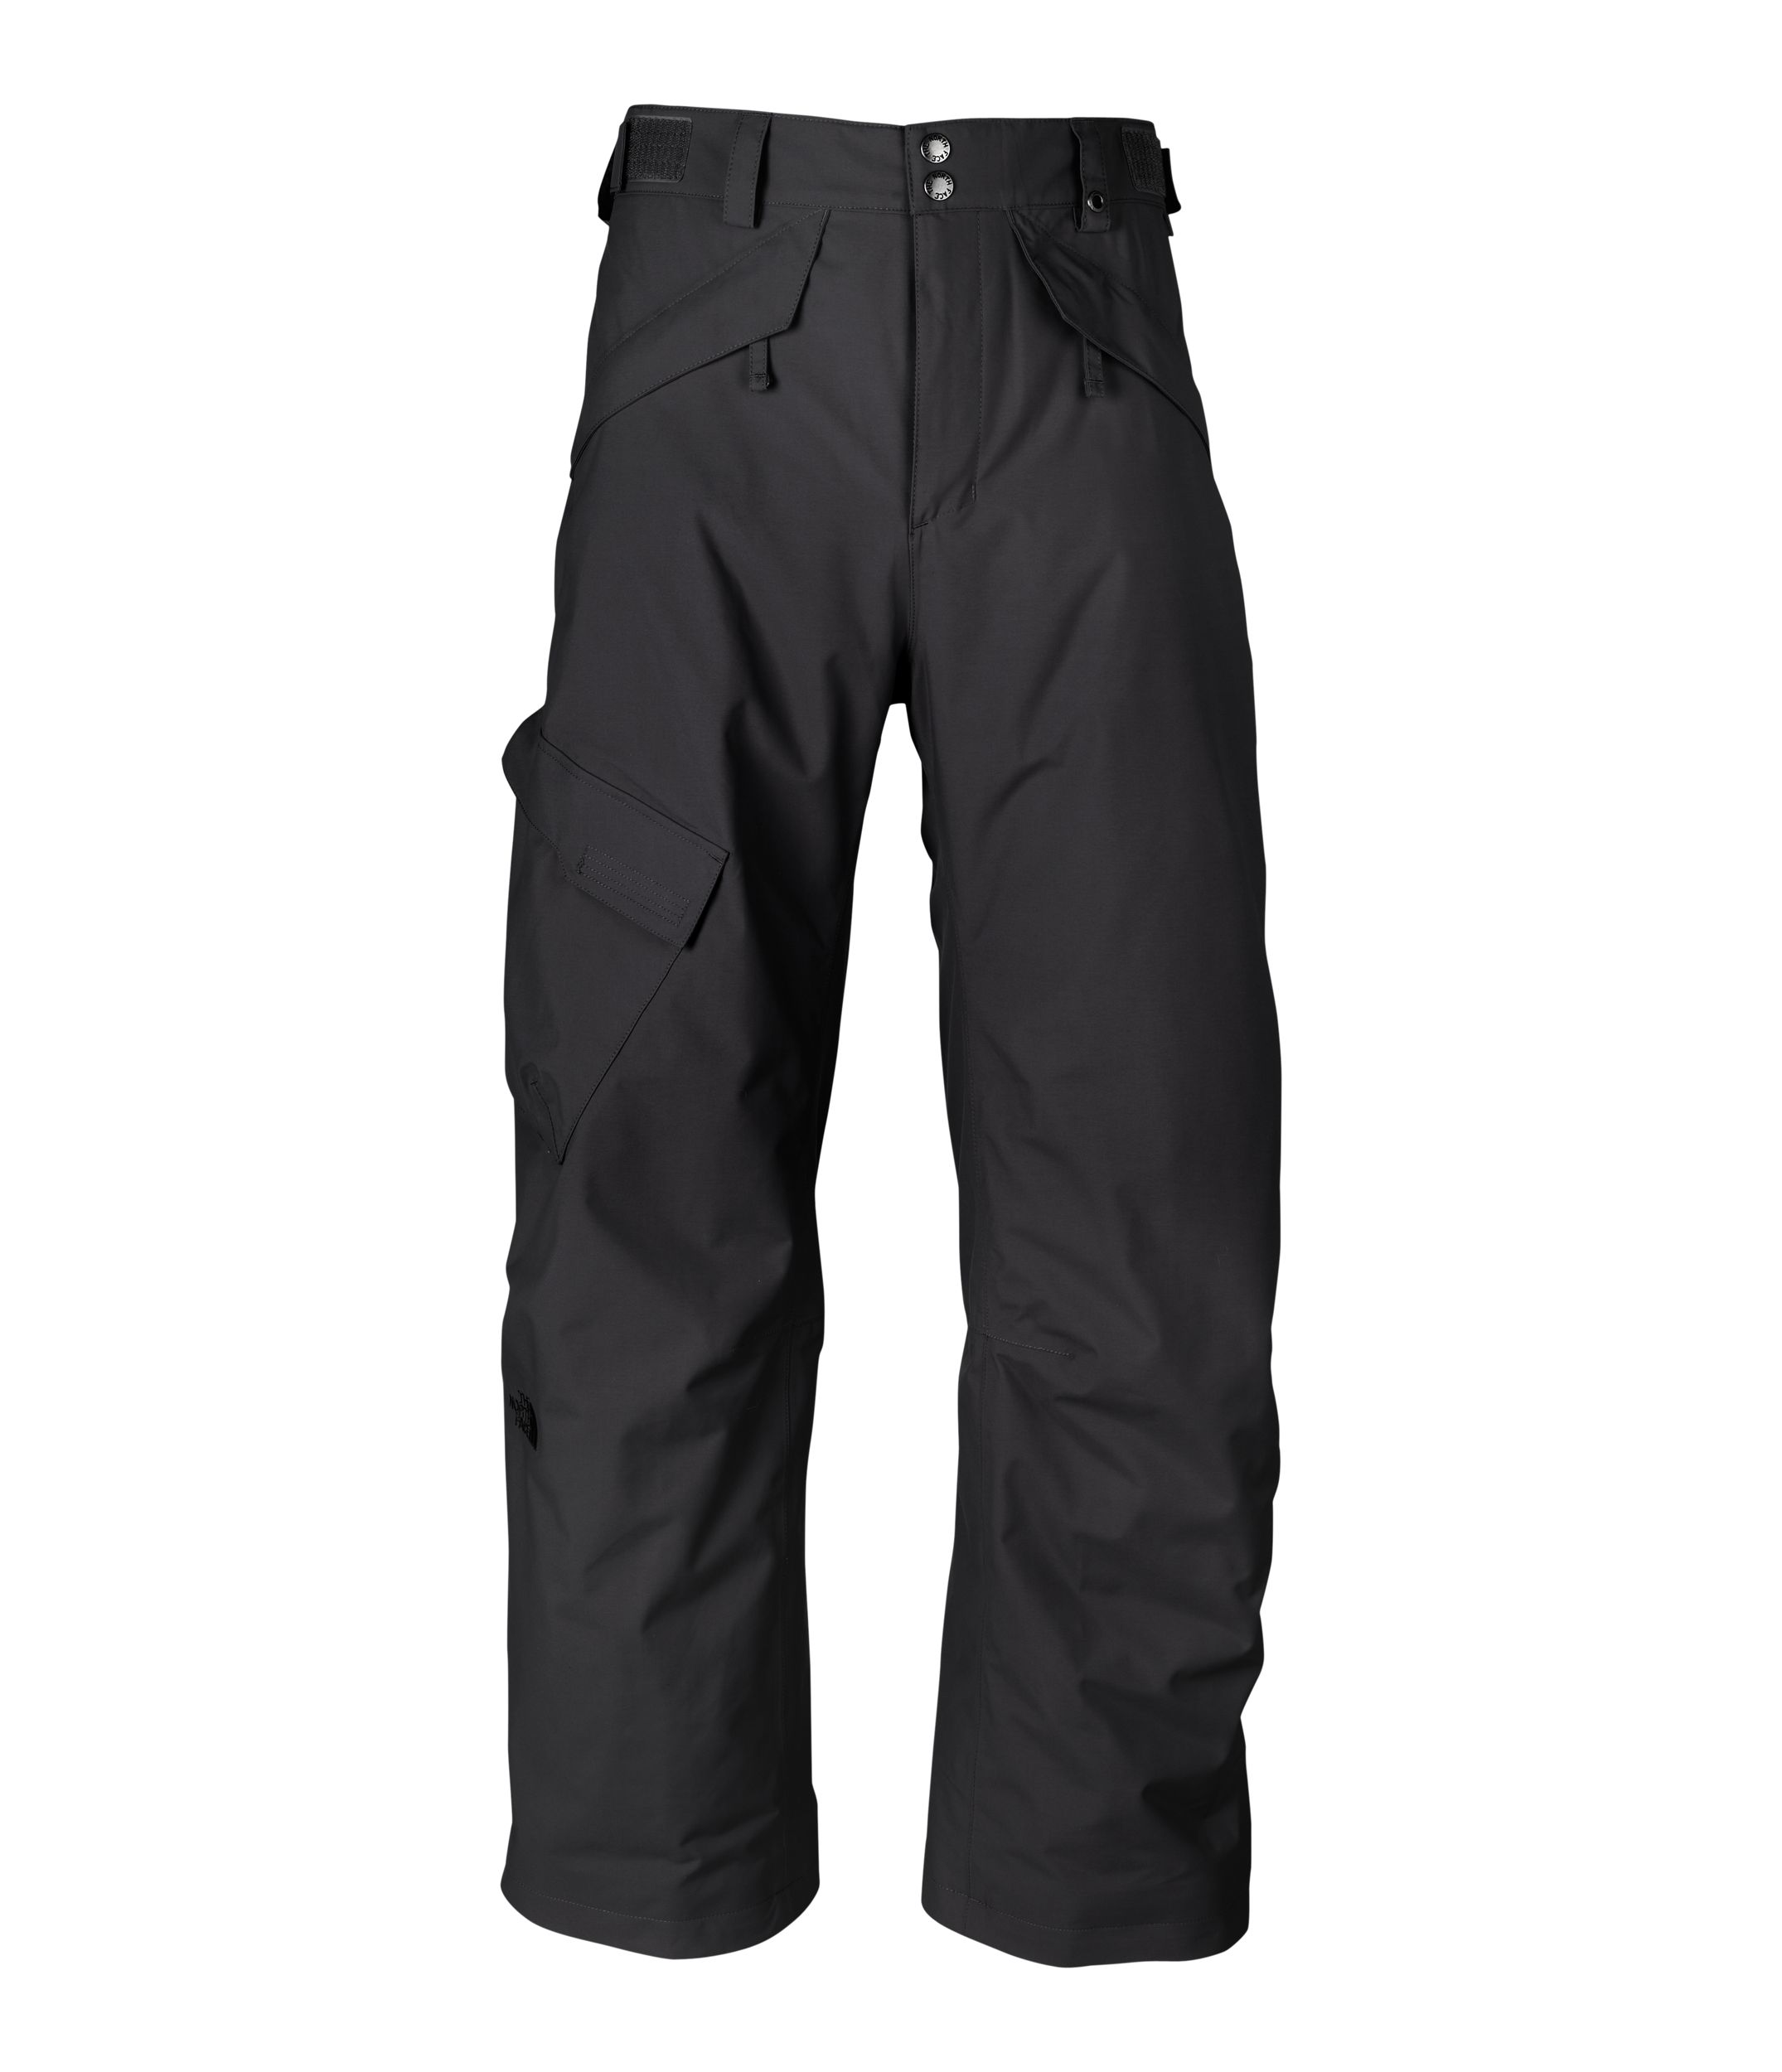 How to Pick the Best Men's Ski Pants